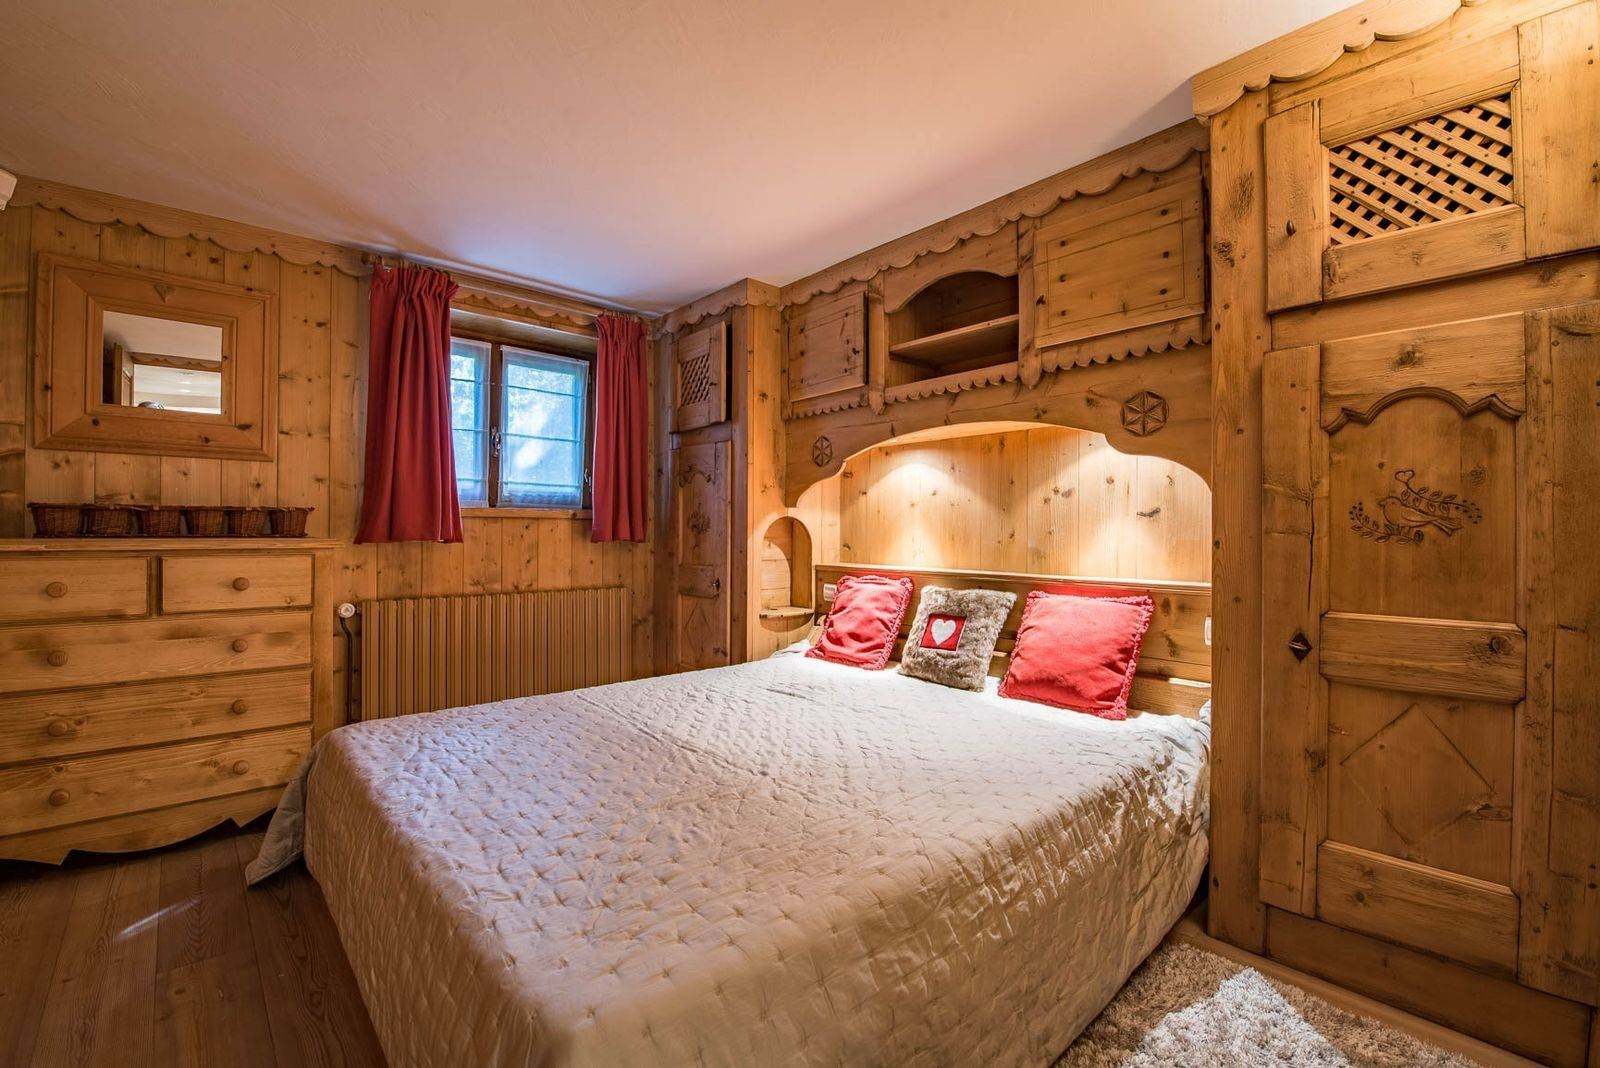 Courchevel 1850 Location Chalet Luxe Chrysoprase Chambre 4